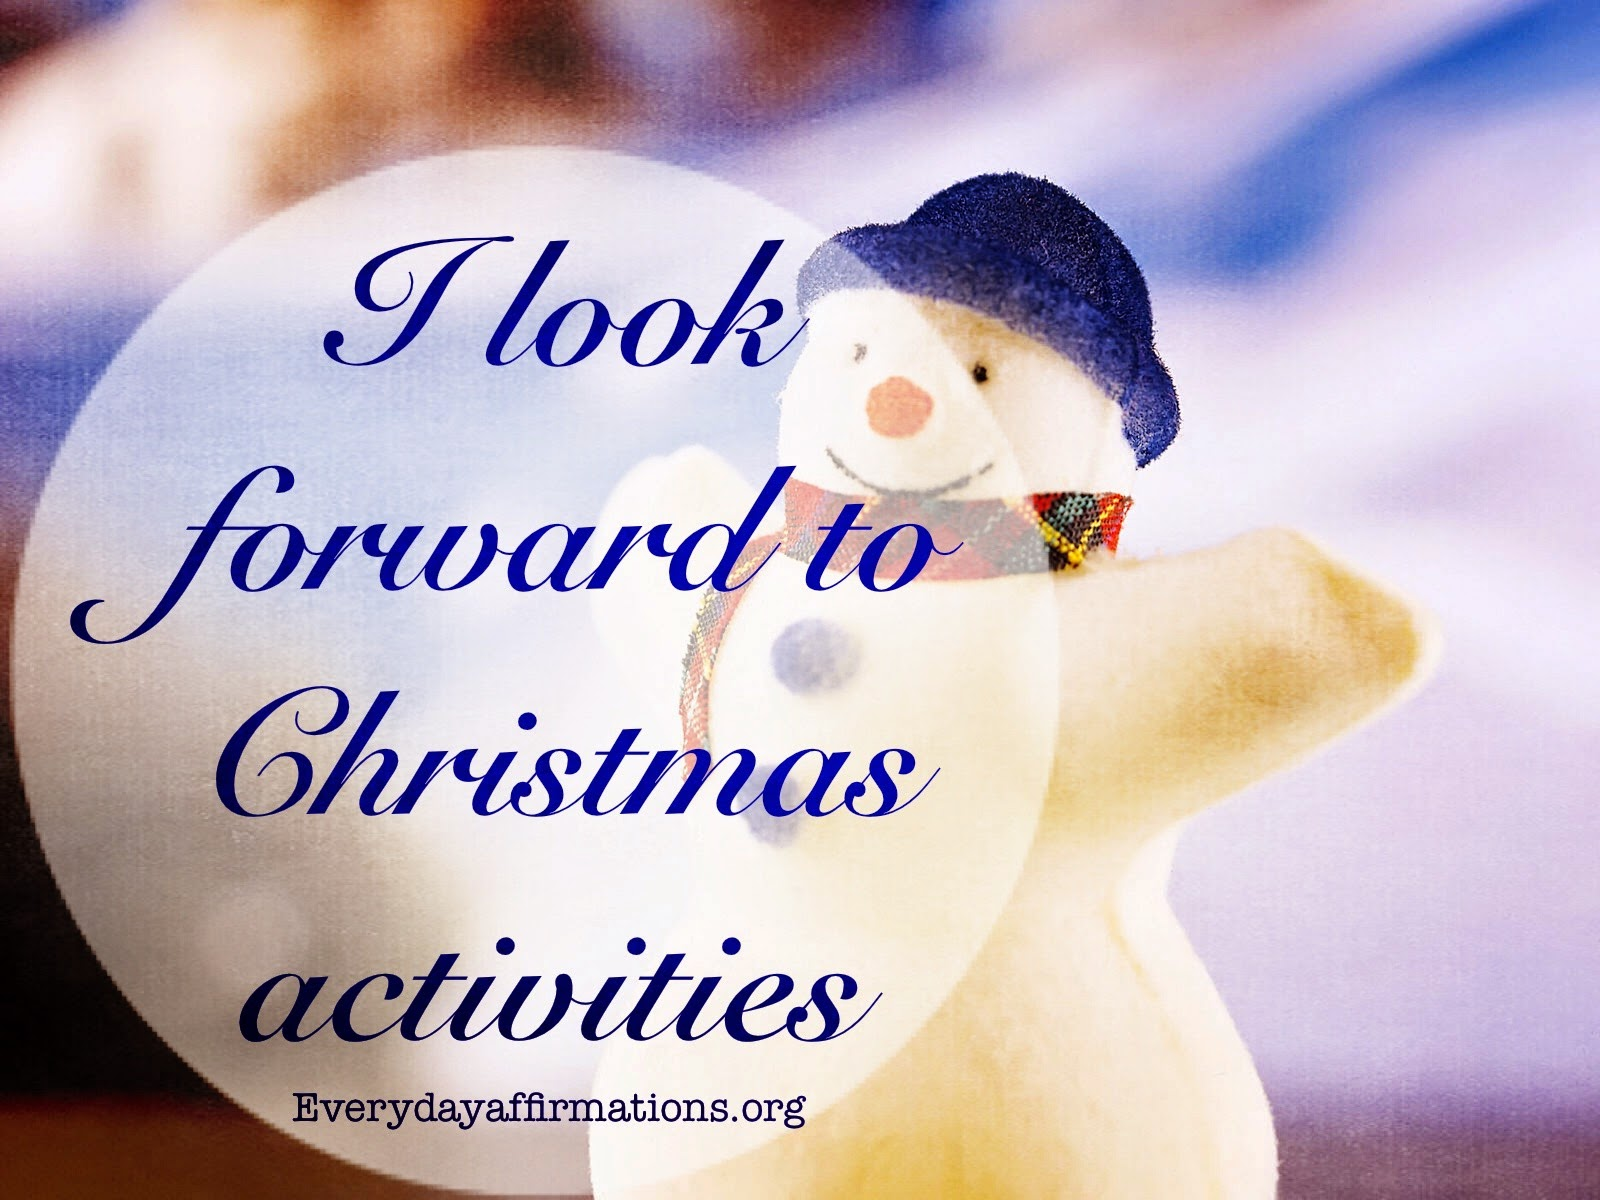 Daily Affirmations, Christmas Affirmations, newyear affirmations